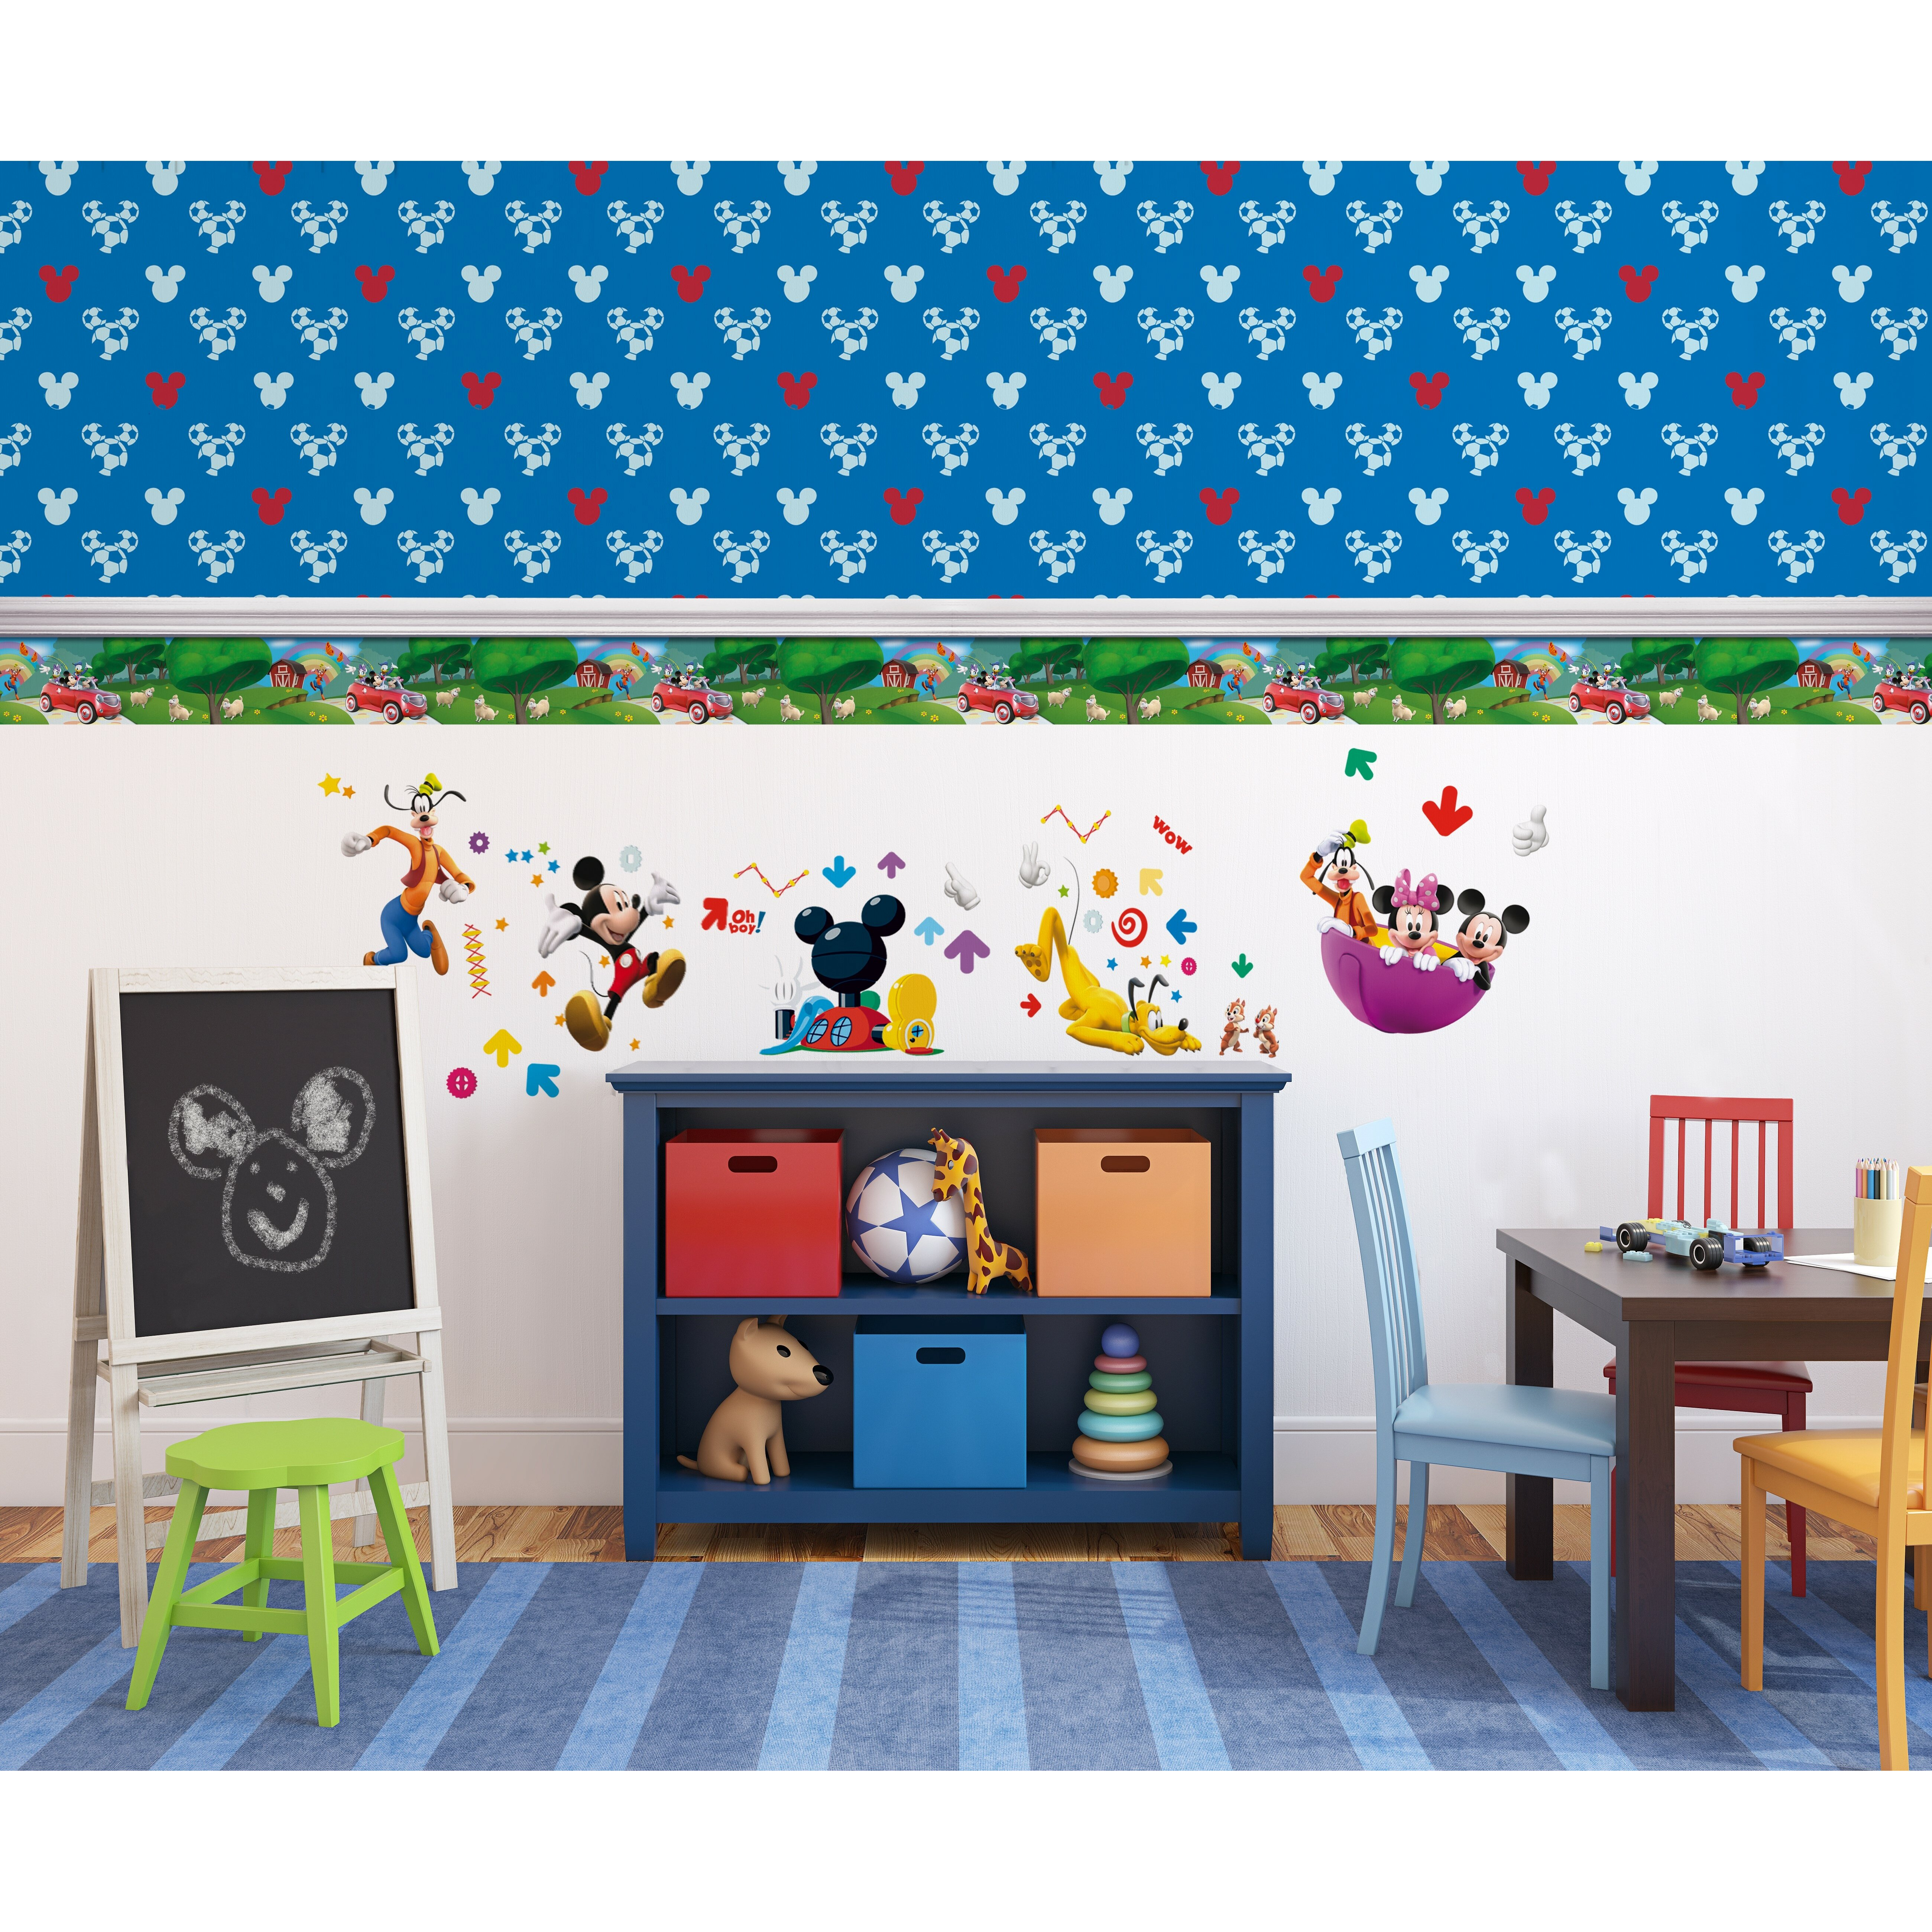 Mickey Mouse Wallpaper For Bedroom Mickey Mouse Bedroom Wallpaper Uk Baby Wall